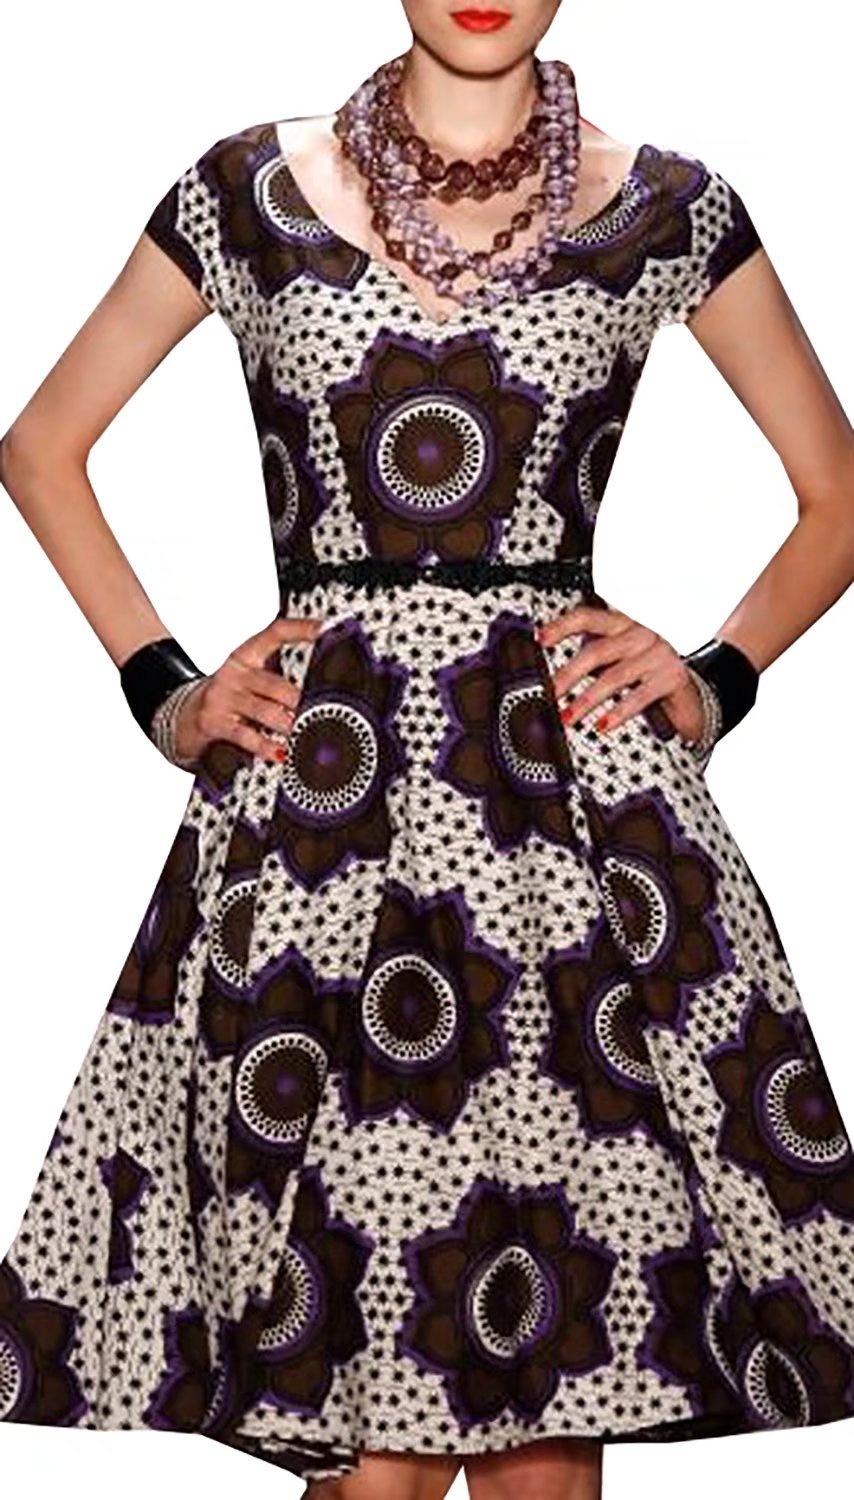 Dellytop Women Cap Sleeve African Print Dashiki Style Floral Party Dress